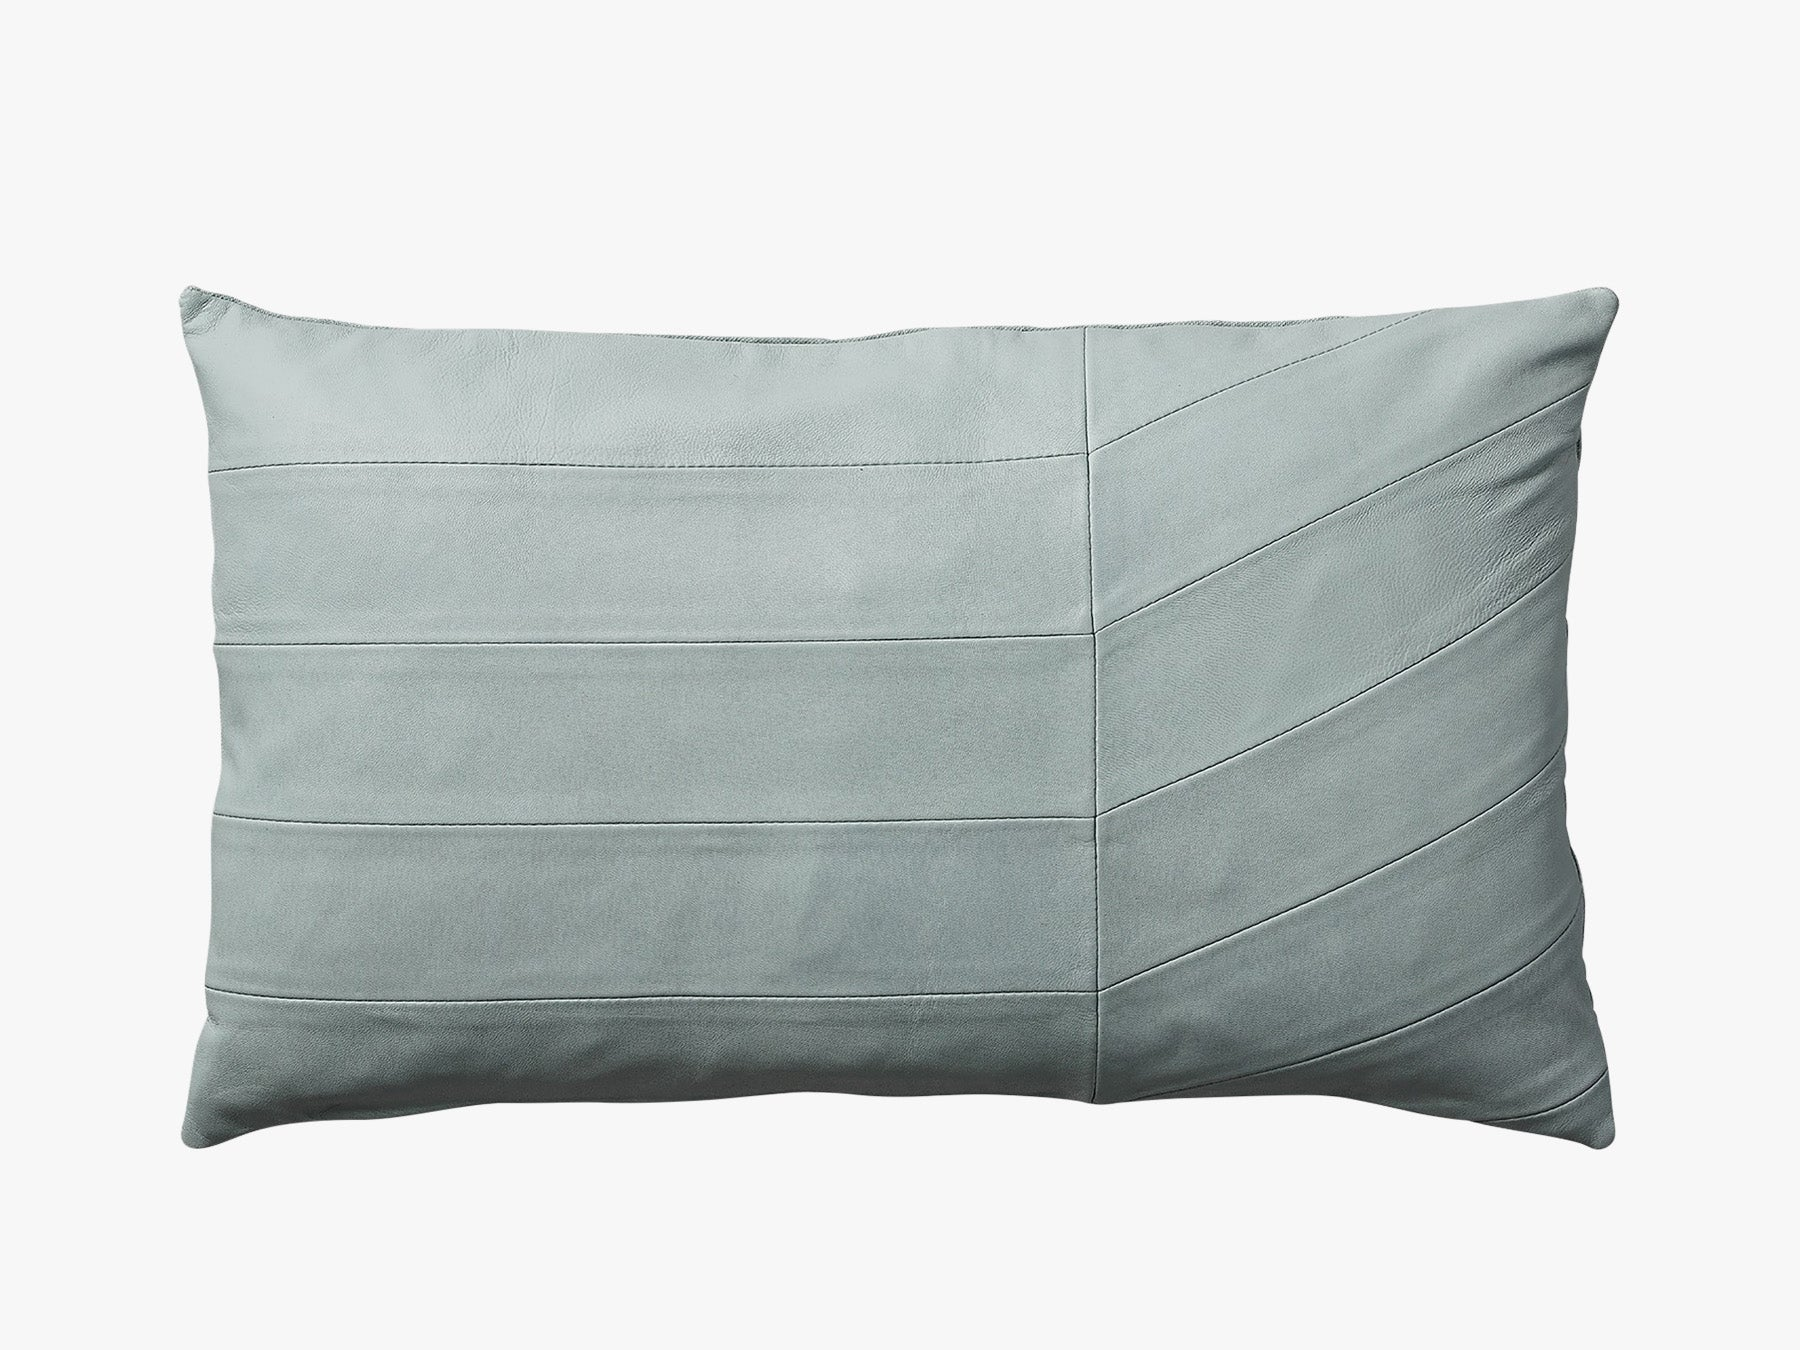 Leather Cushion - Pale Mint fra AYTM